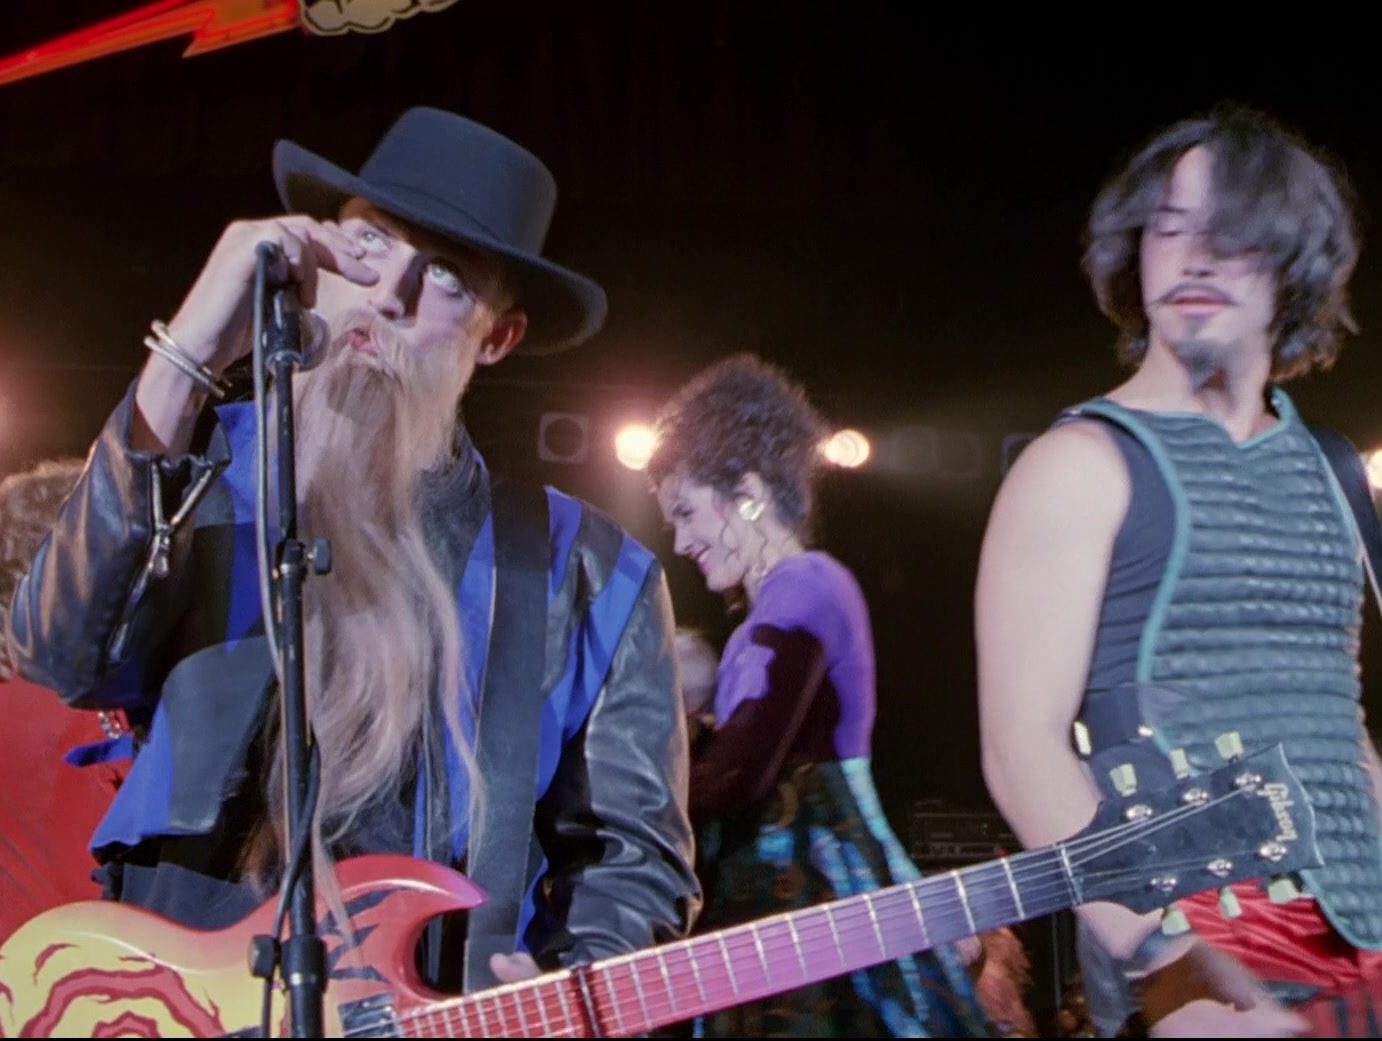 Gibson Guitar in Bill Teds Bogus Journey 1 e1606223547183 30 Most Triumphant Truths About Bill & Ted's Bogus Journey